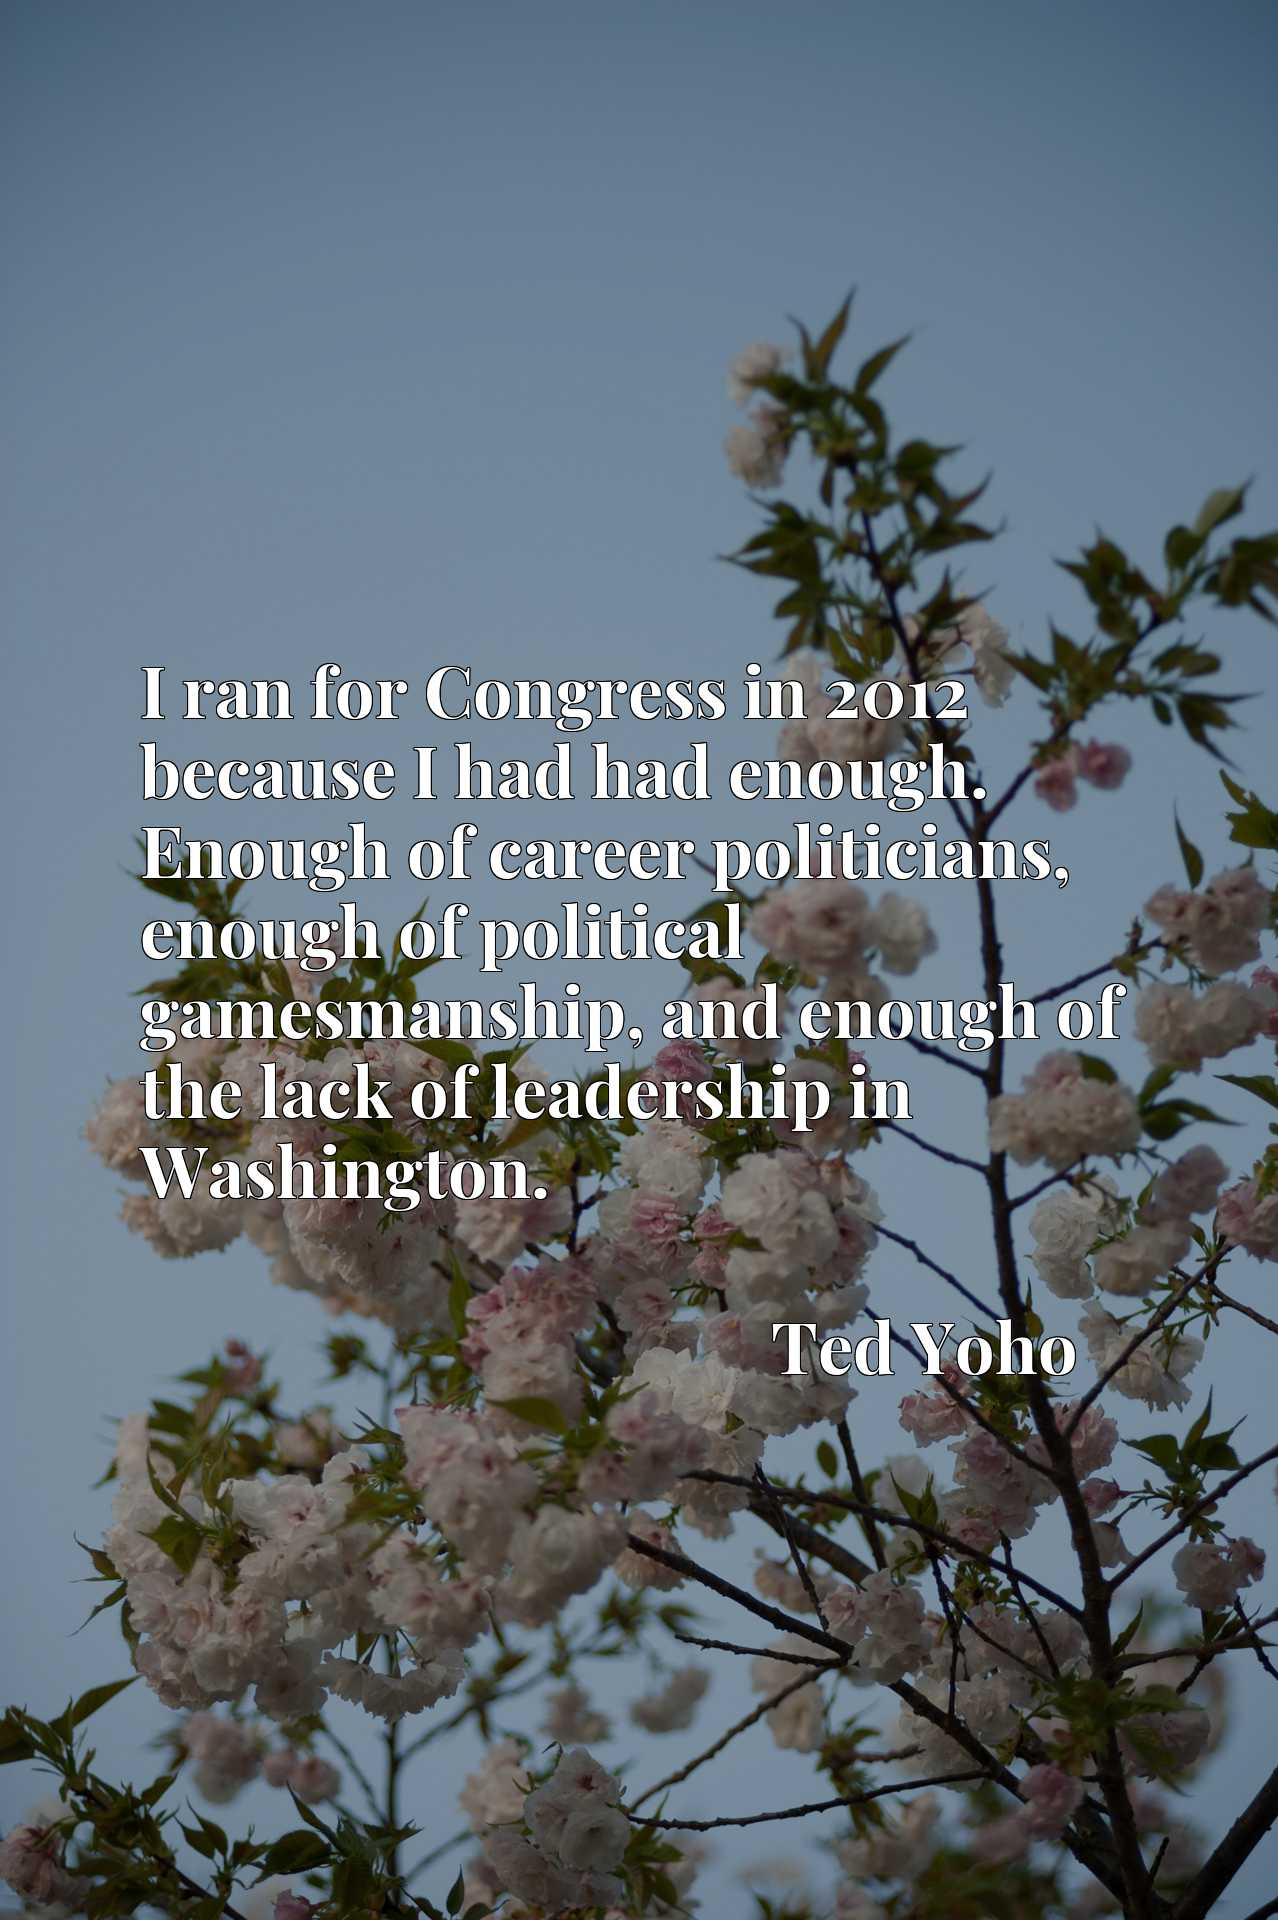 I ran for Congress in 2012 because I had had enough. Enough of career politicians, enough of political gamesmanship, and enough of the lack of leadership in Washington.